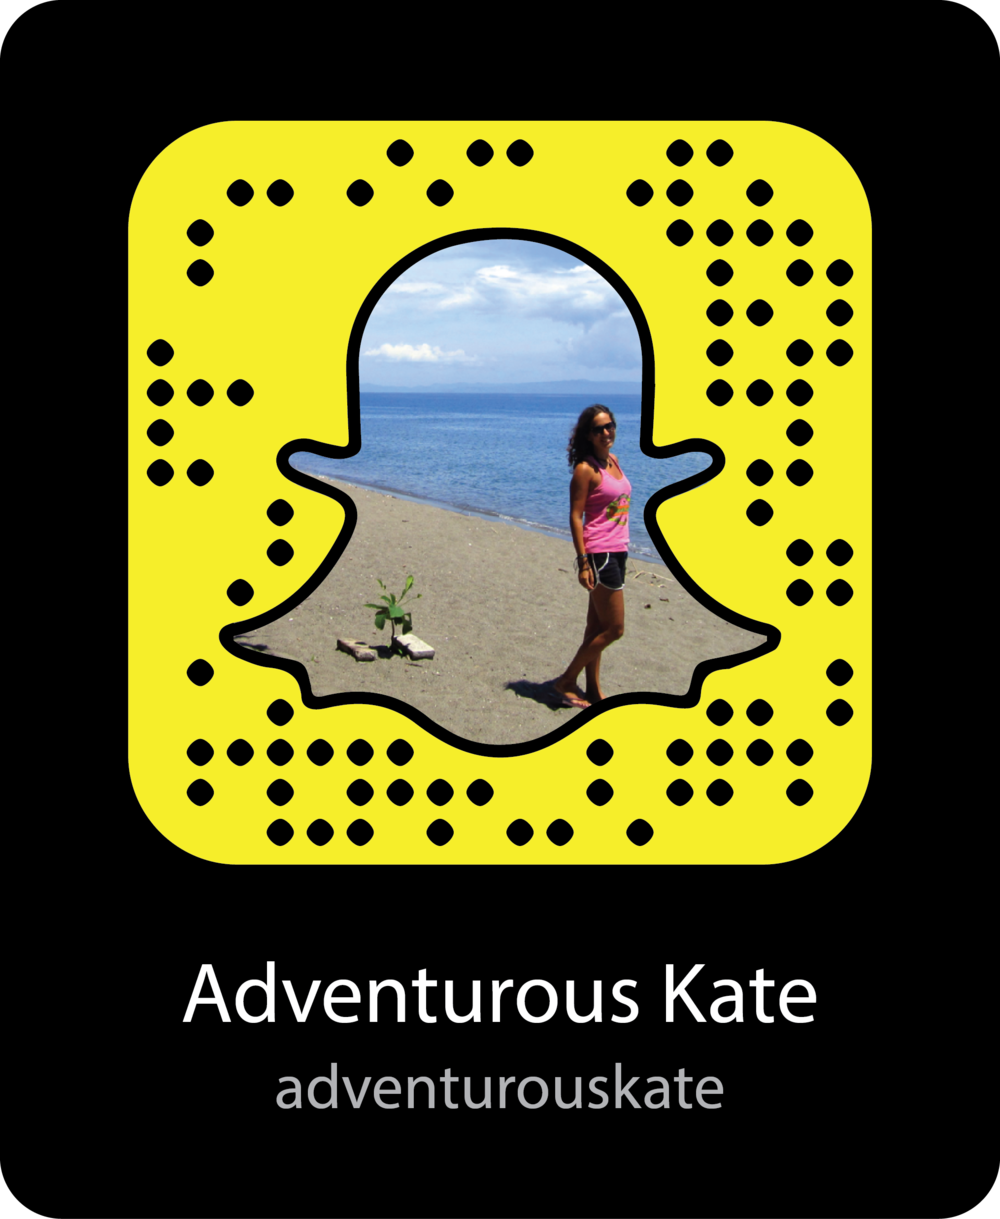 AdventurousKate-Travel-snapchat-snapcode.png